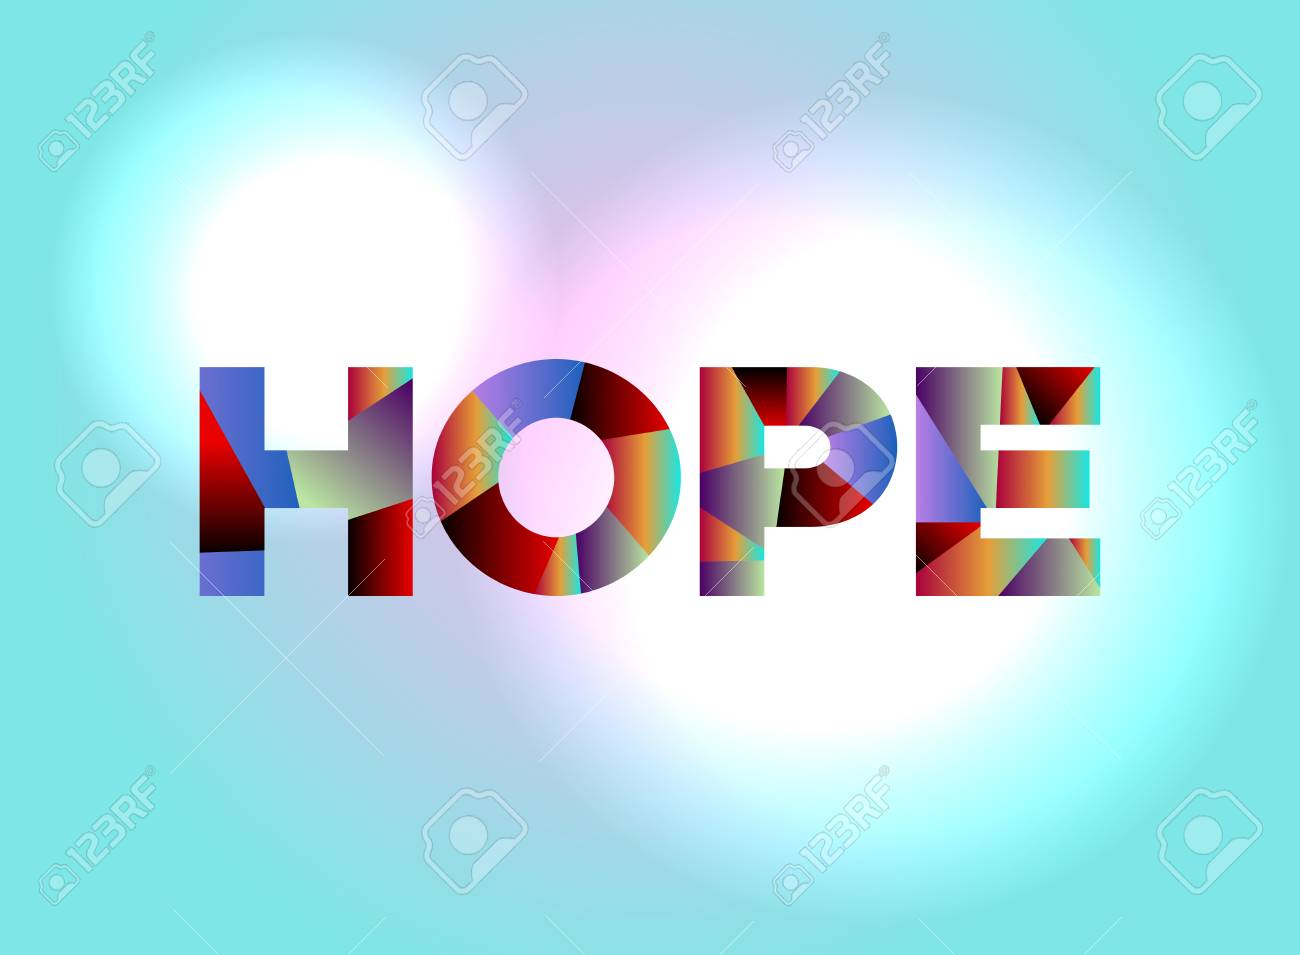 Image result for the word hope